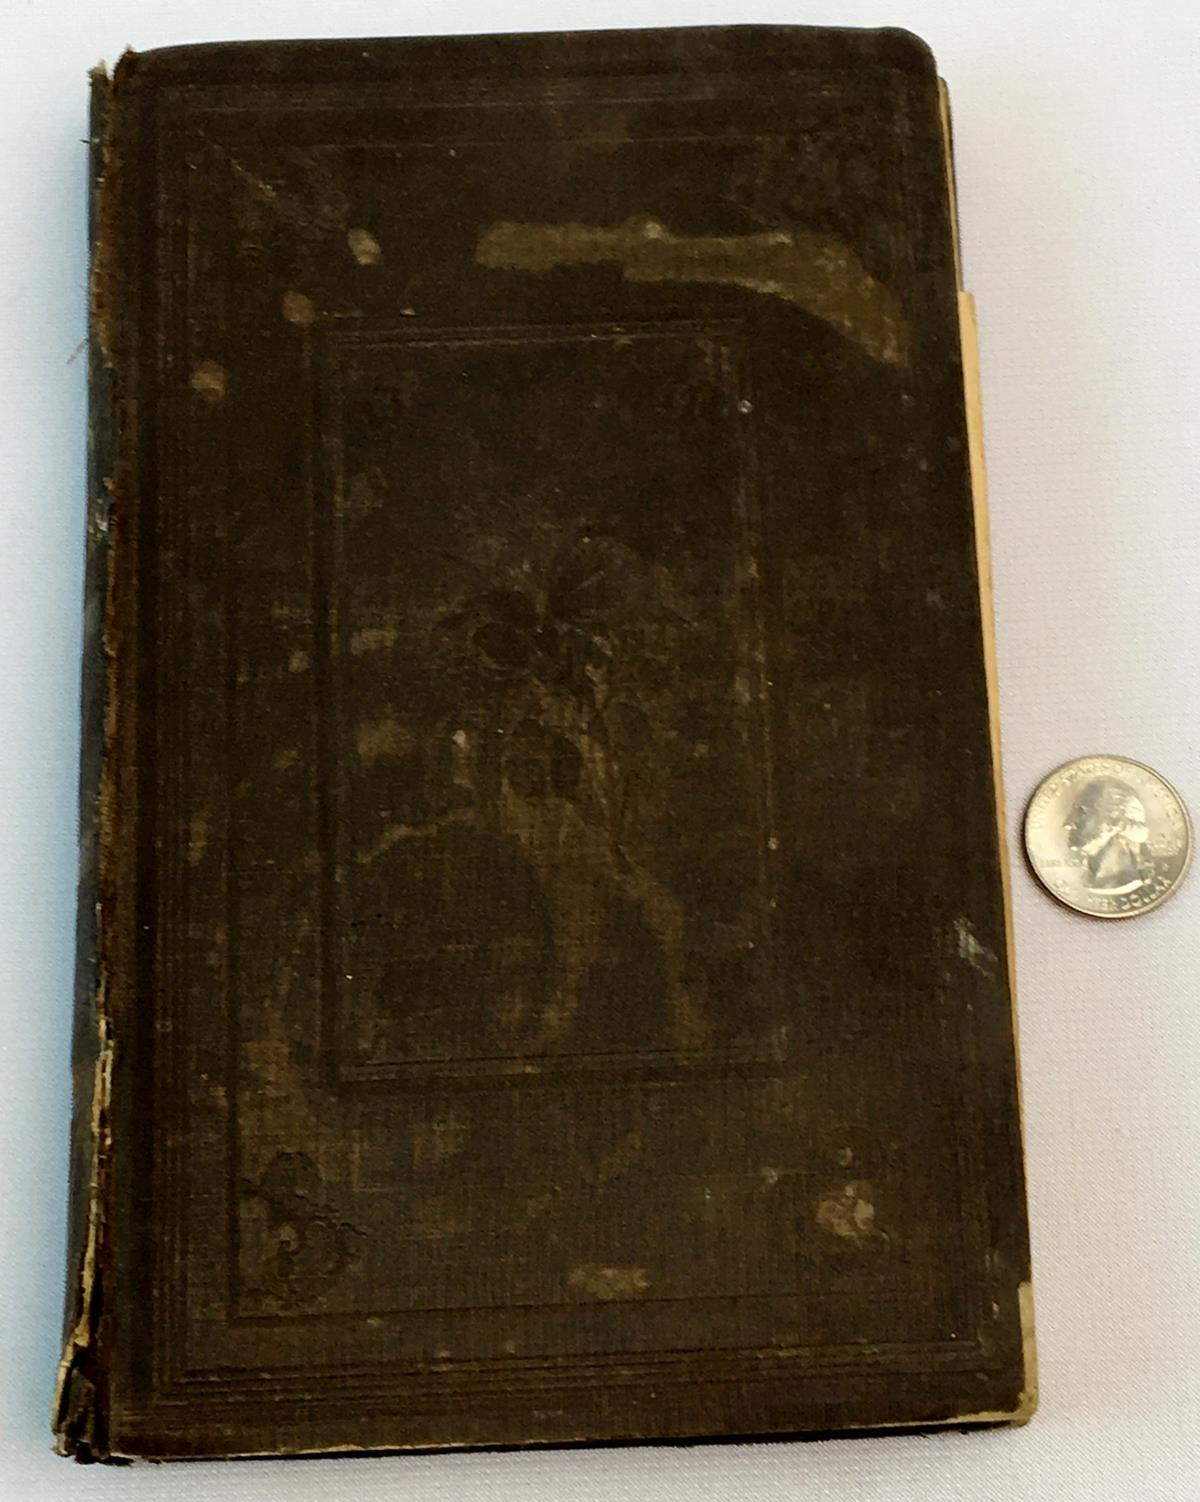 1851 The Flower Garden or Breck's Book of Flowers by Joseph Breck FIRST EDITION